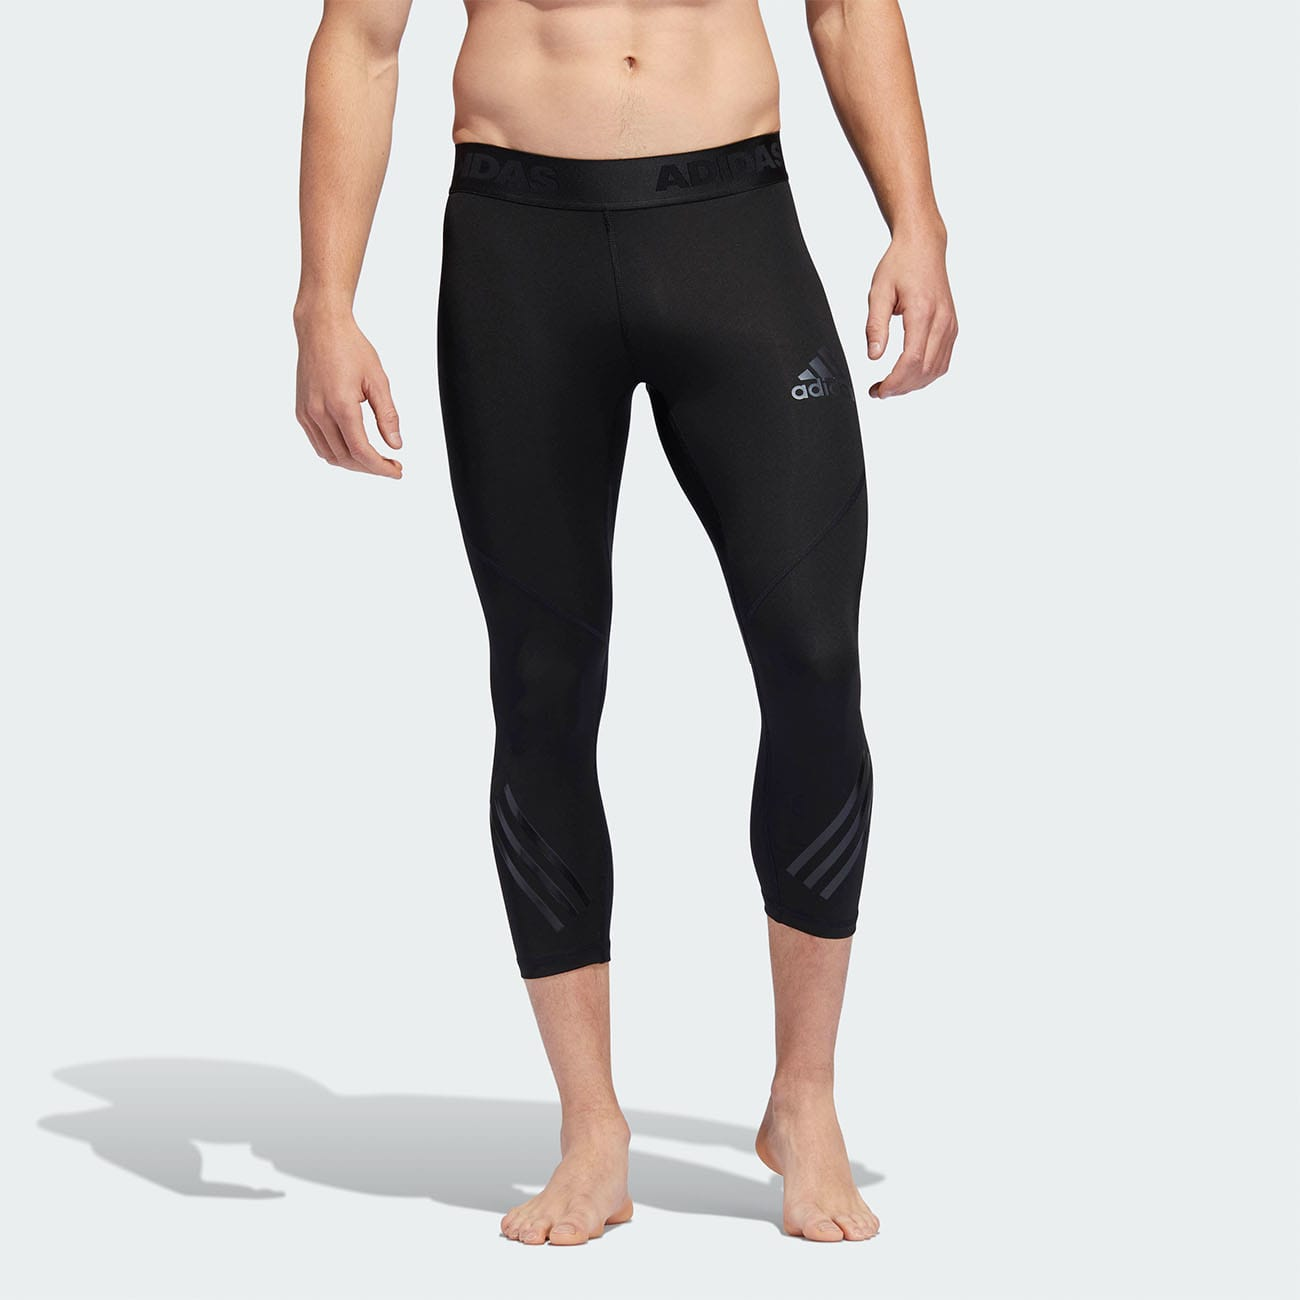 SEO-Gifts-for-Athletes-Body-Image-2